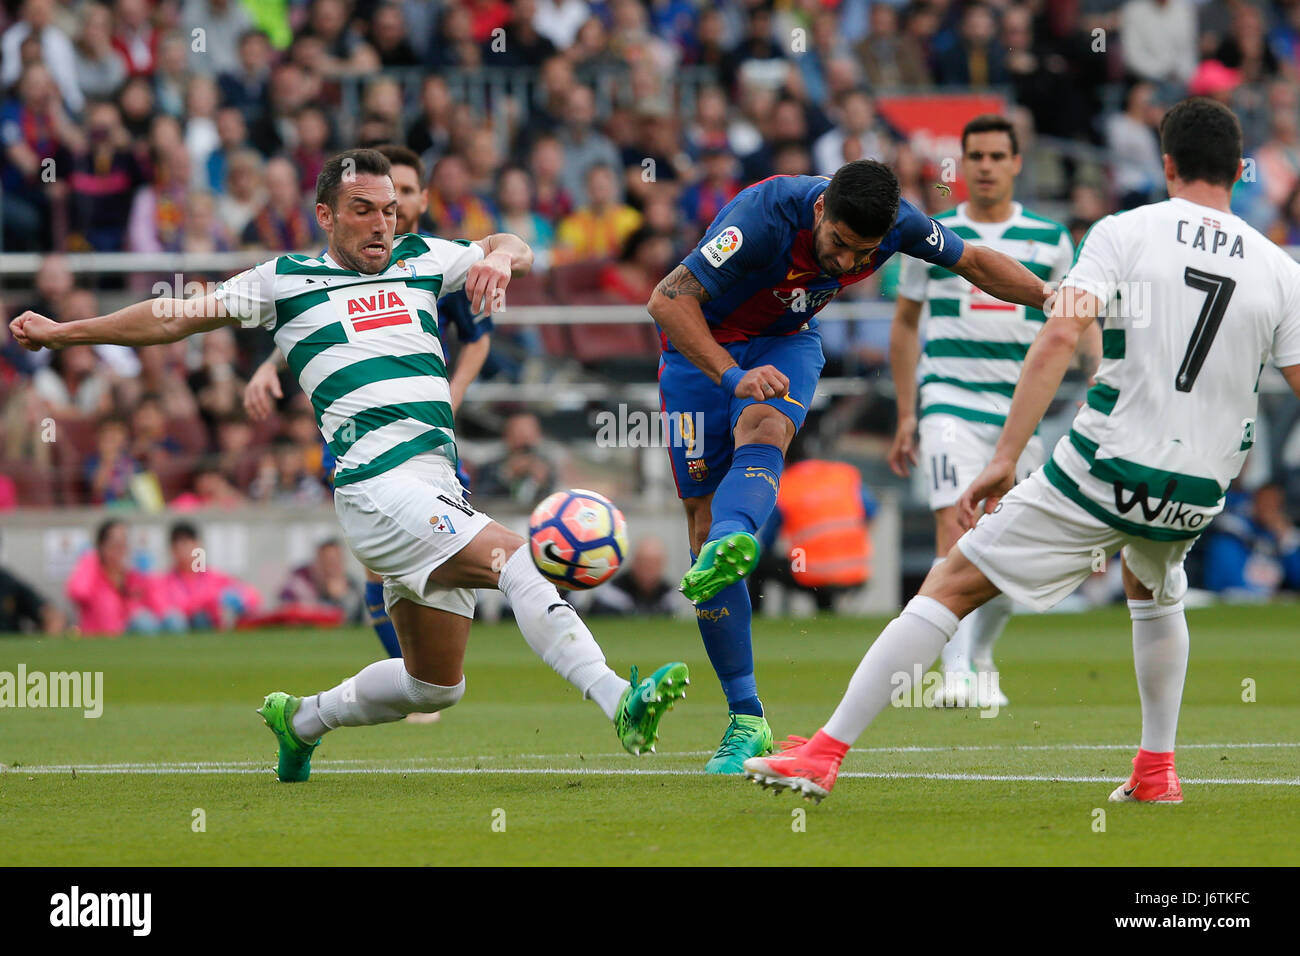 Barcelona, Spain. 21st May, 2017. Barcelona's Luis Suarez (C) kicks the ball during the Spanish first division - Stock Image